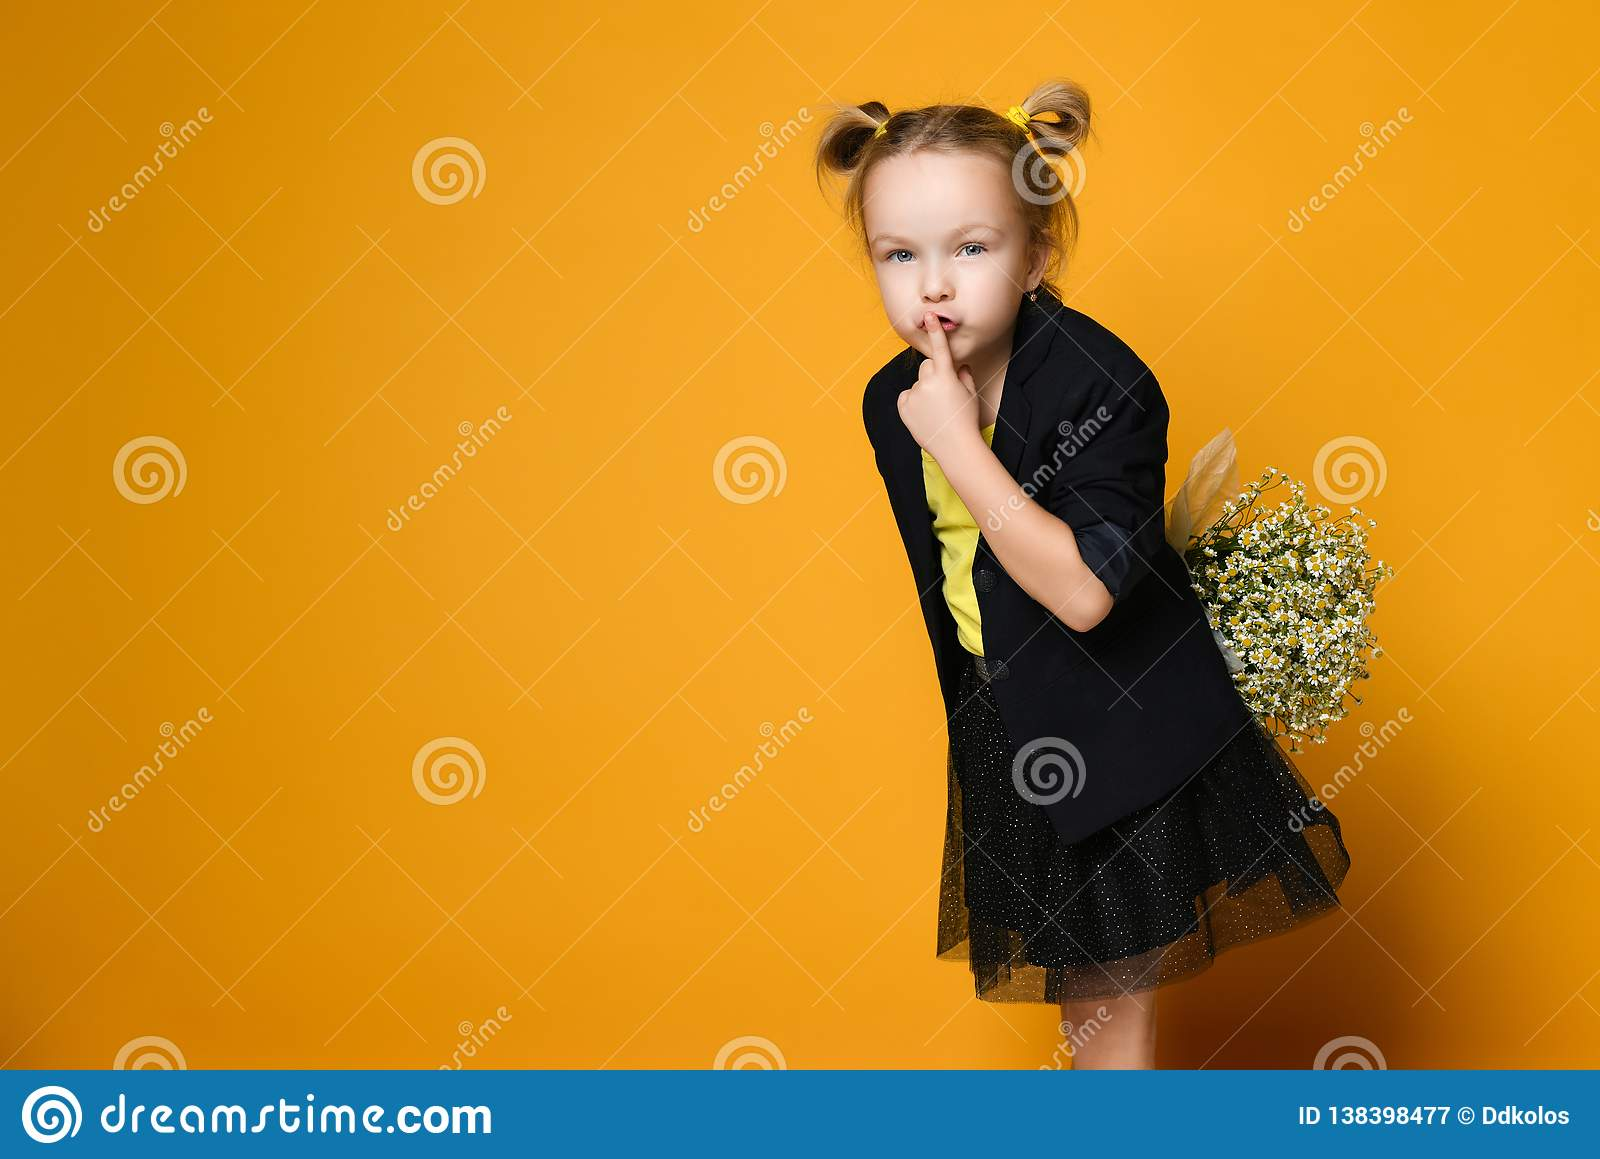 Cute little girl with her finger over mouth saying